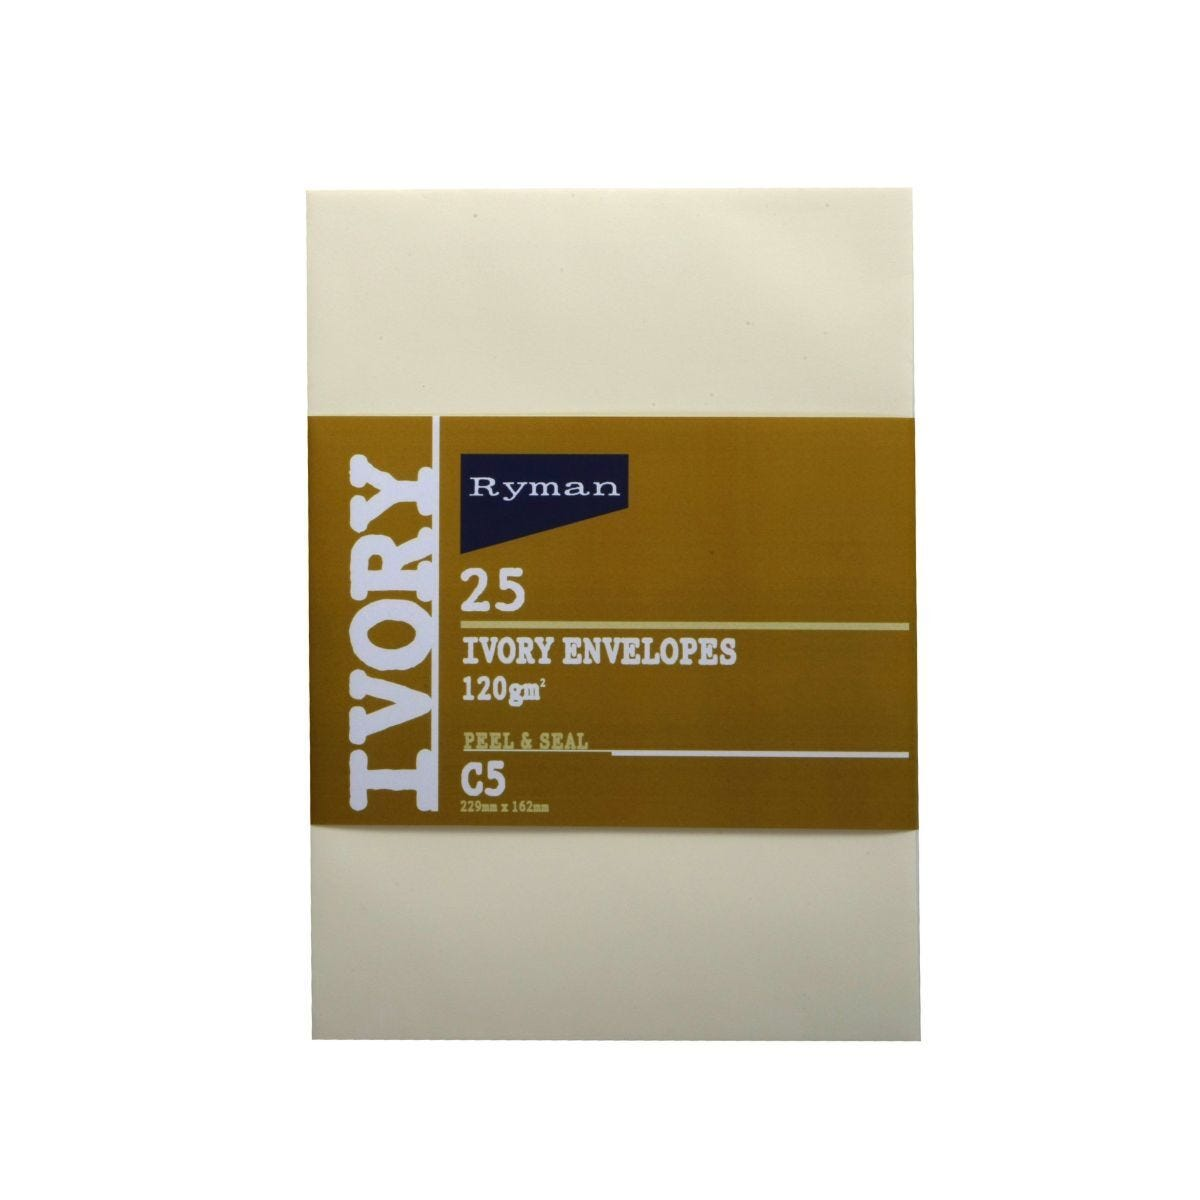 Ryman Card Envelopes C5 120gsm Peal and Seal Pack of 25 Ivory